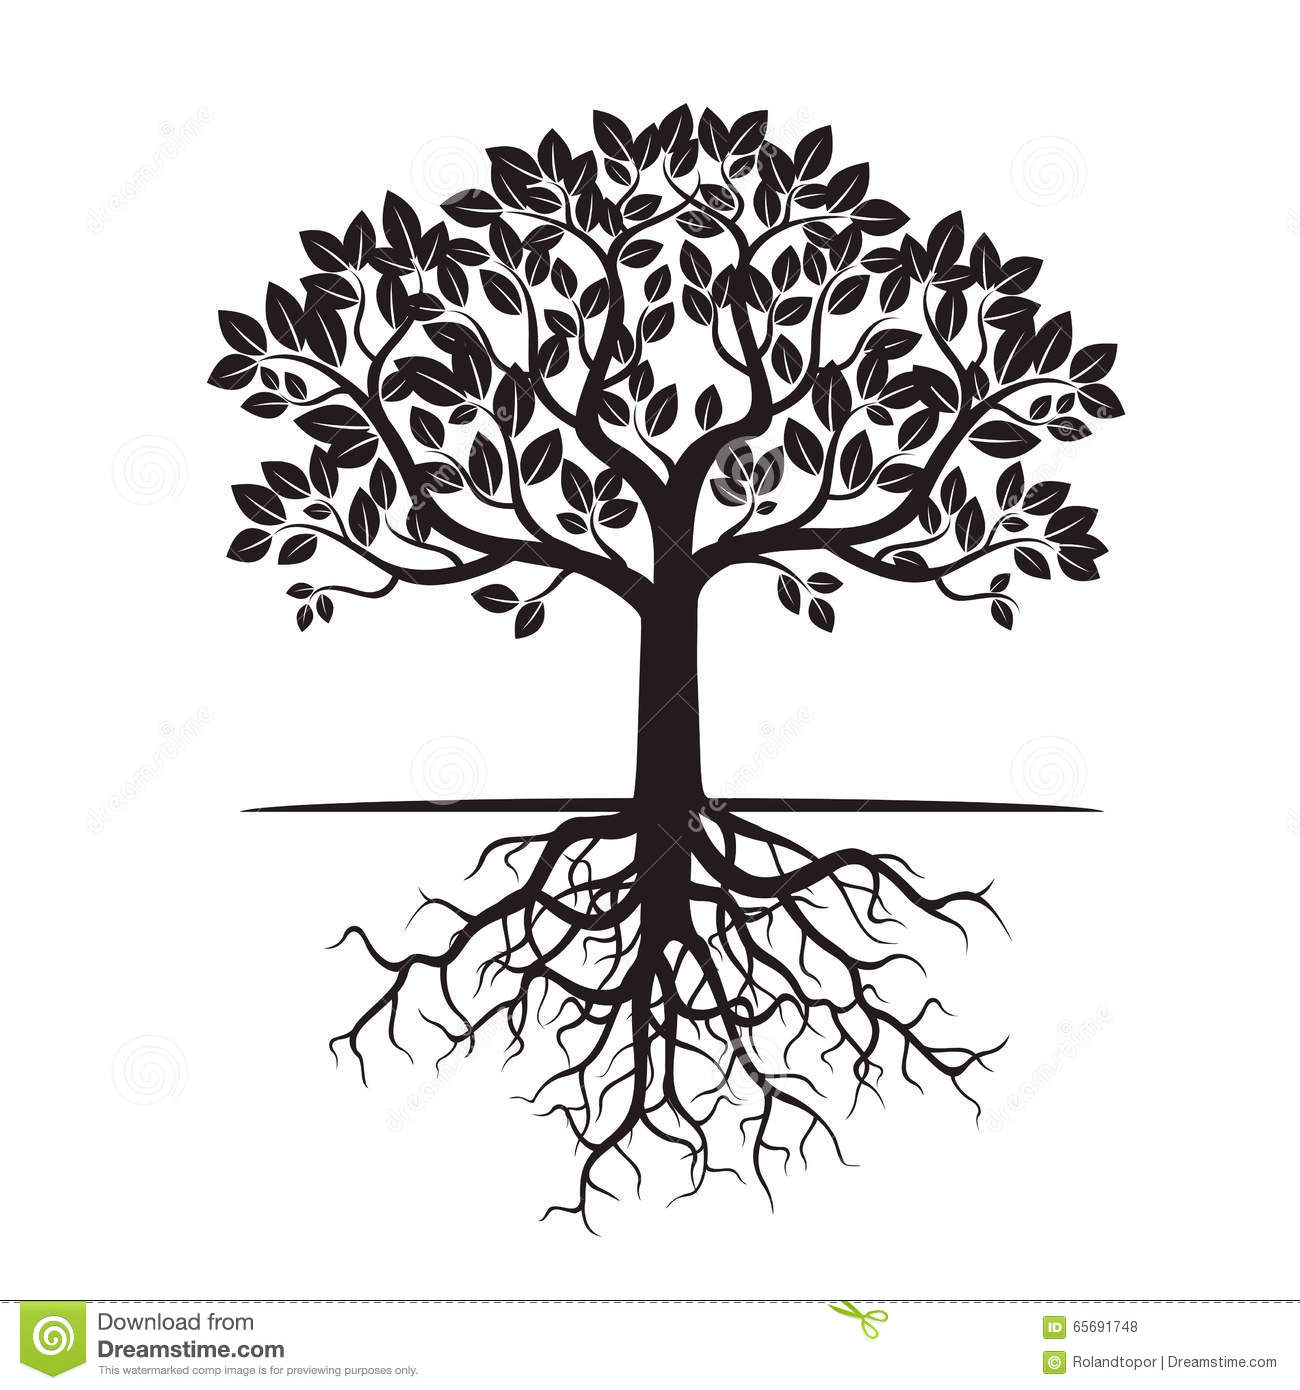 3d Free Fall Nature Wallpaper Black Tree And Roots Vector Illustration Stock